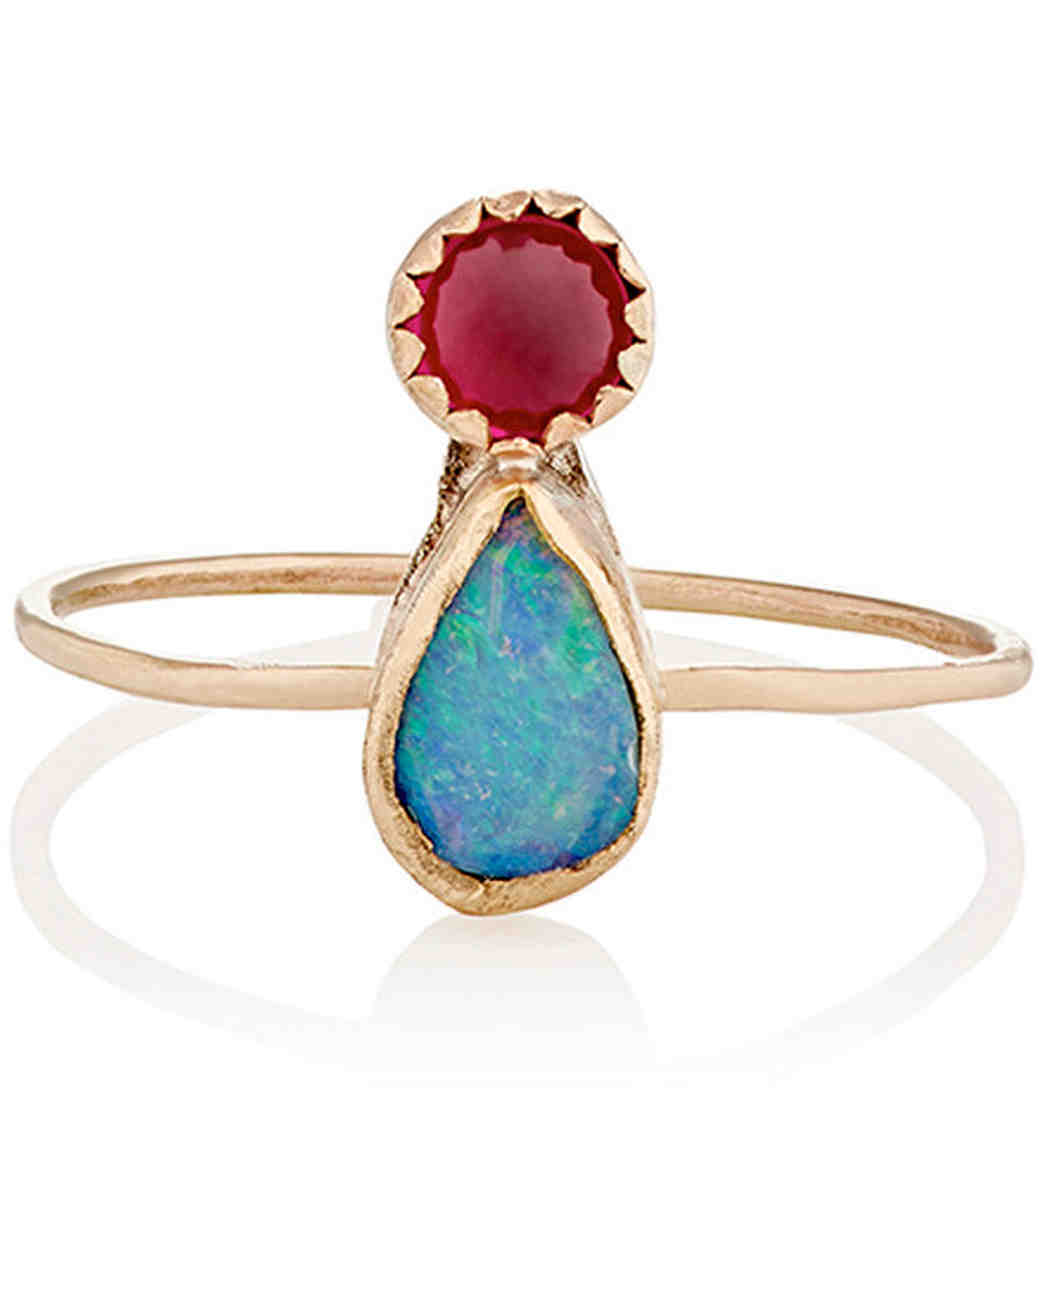 Julie Wolfe Opal & Ruby Engagement Ring